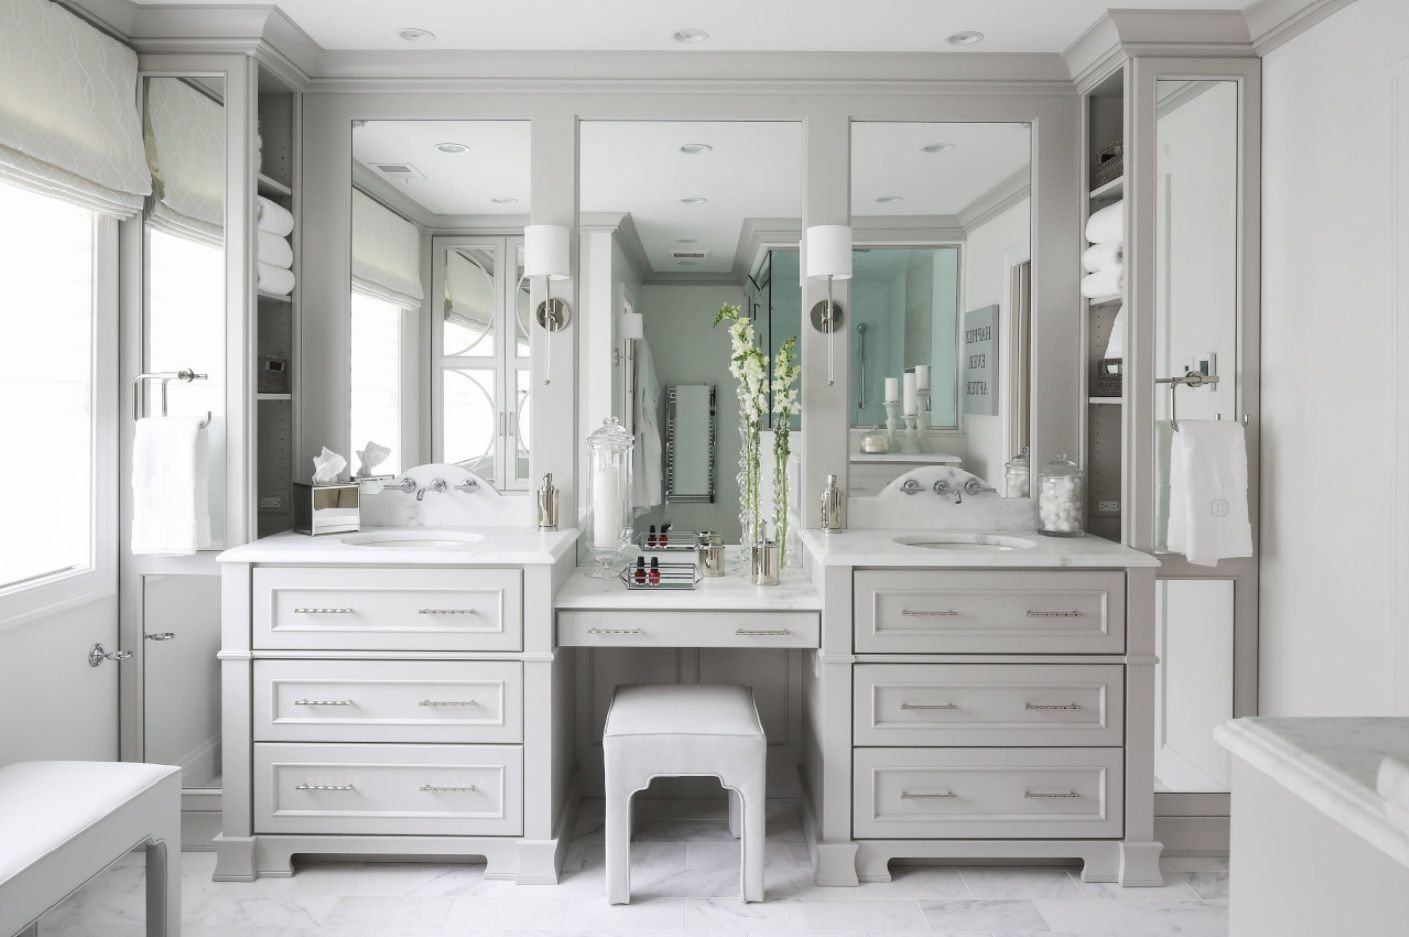 Classic gray boudoir with the cabinets, shelvings and large mirrors in master bathroom